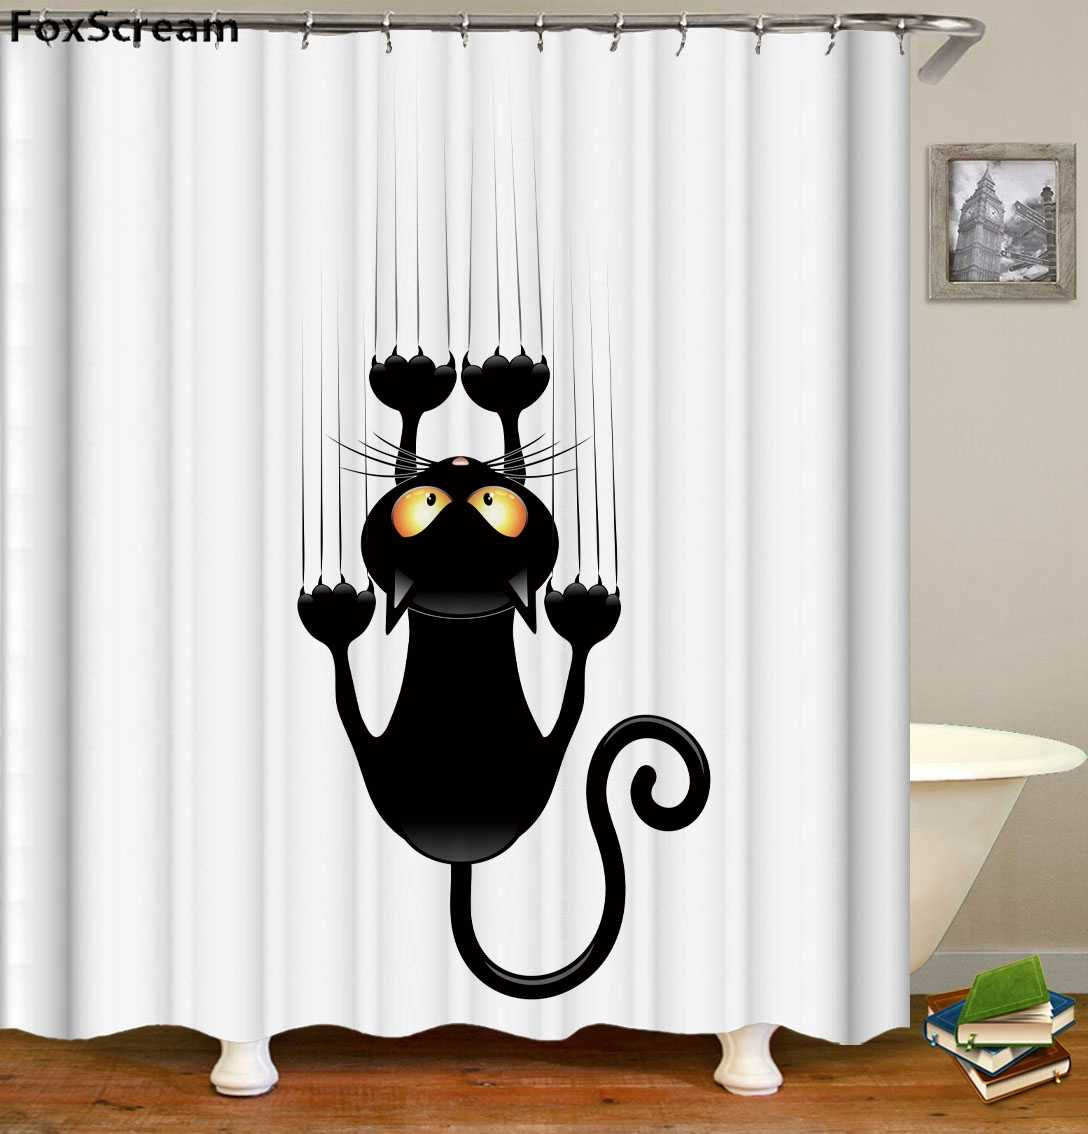 Cat Bath Shower Curtain Funny Star Space Waterproof Cat shower curtains bathroom curtain Fabric  Curtains For Bathroom Or Mat